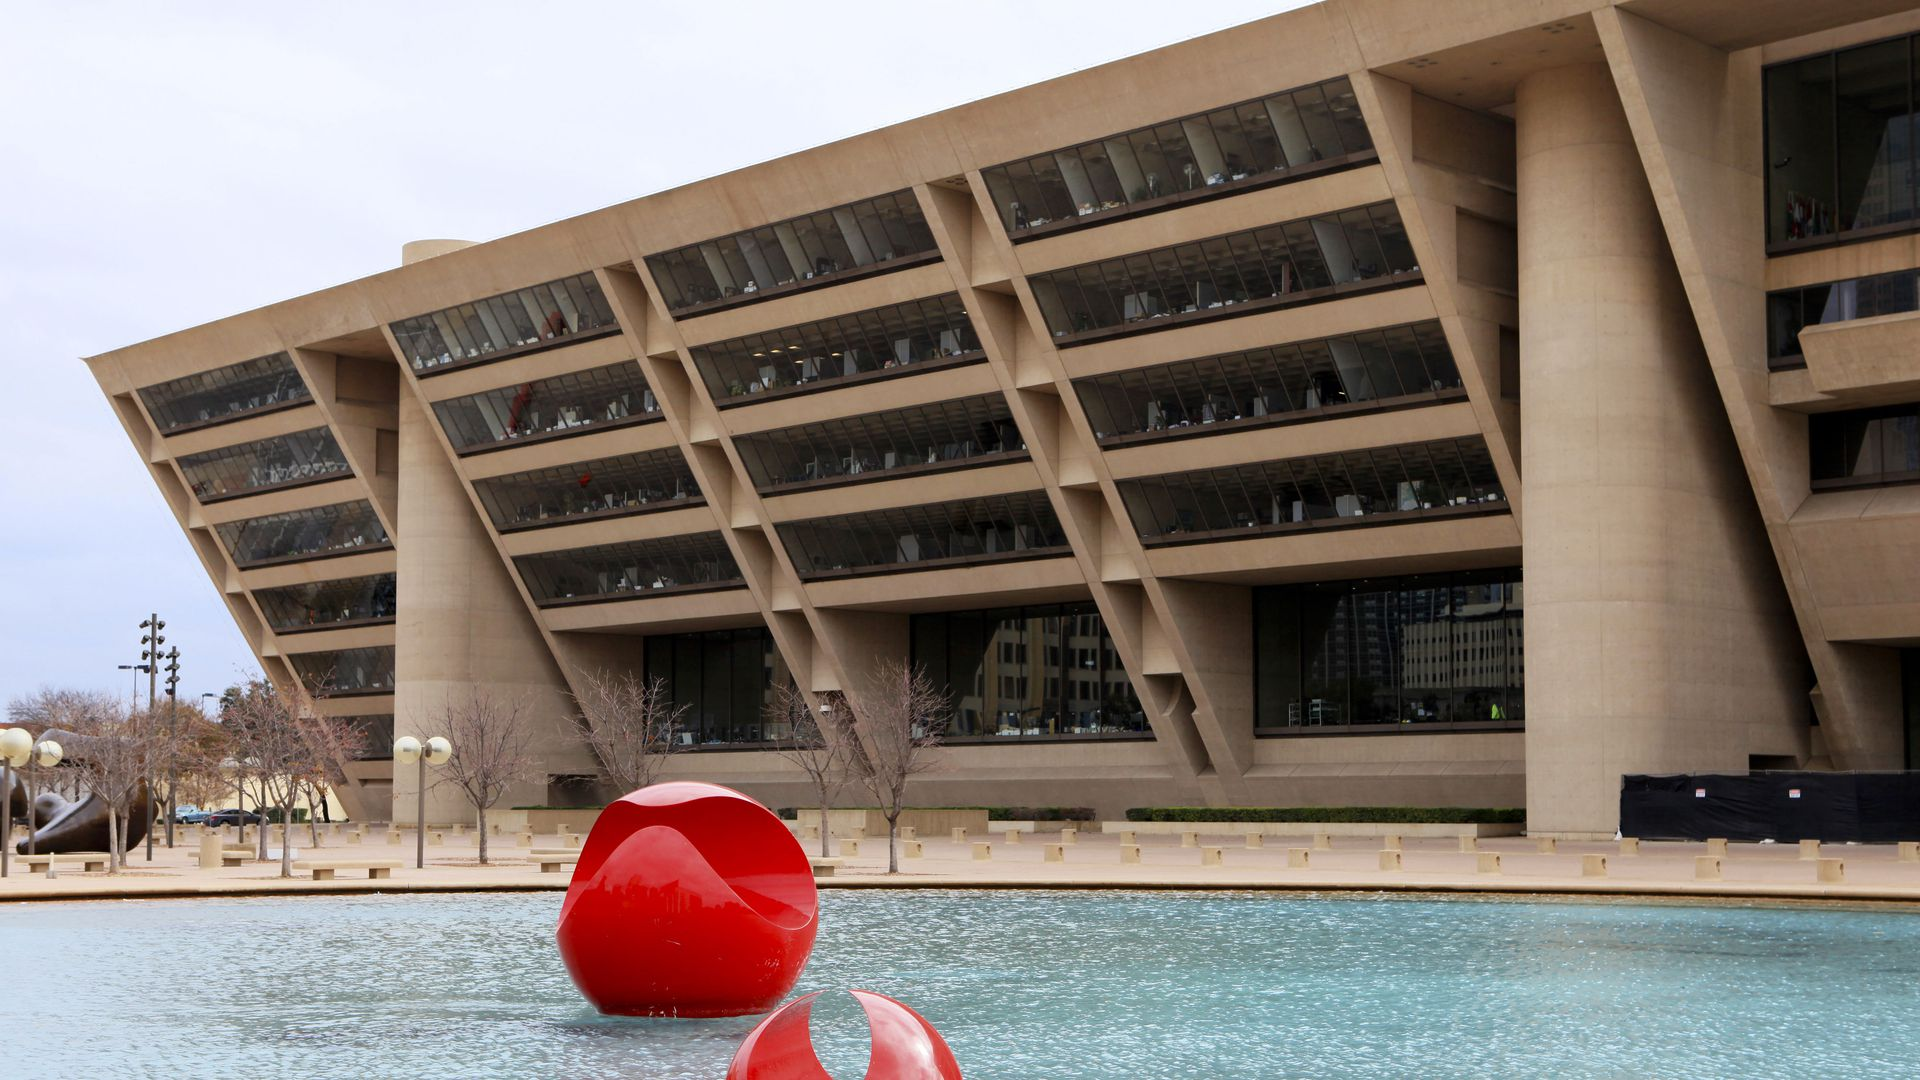 Dallas City Hall and the plaza in front.